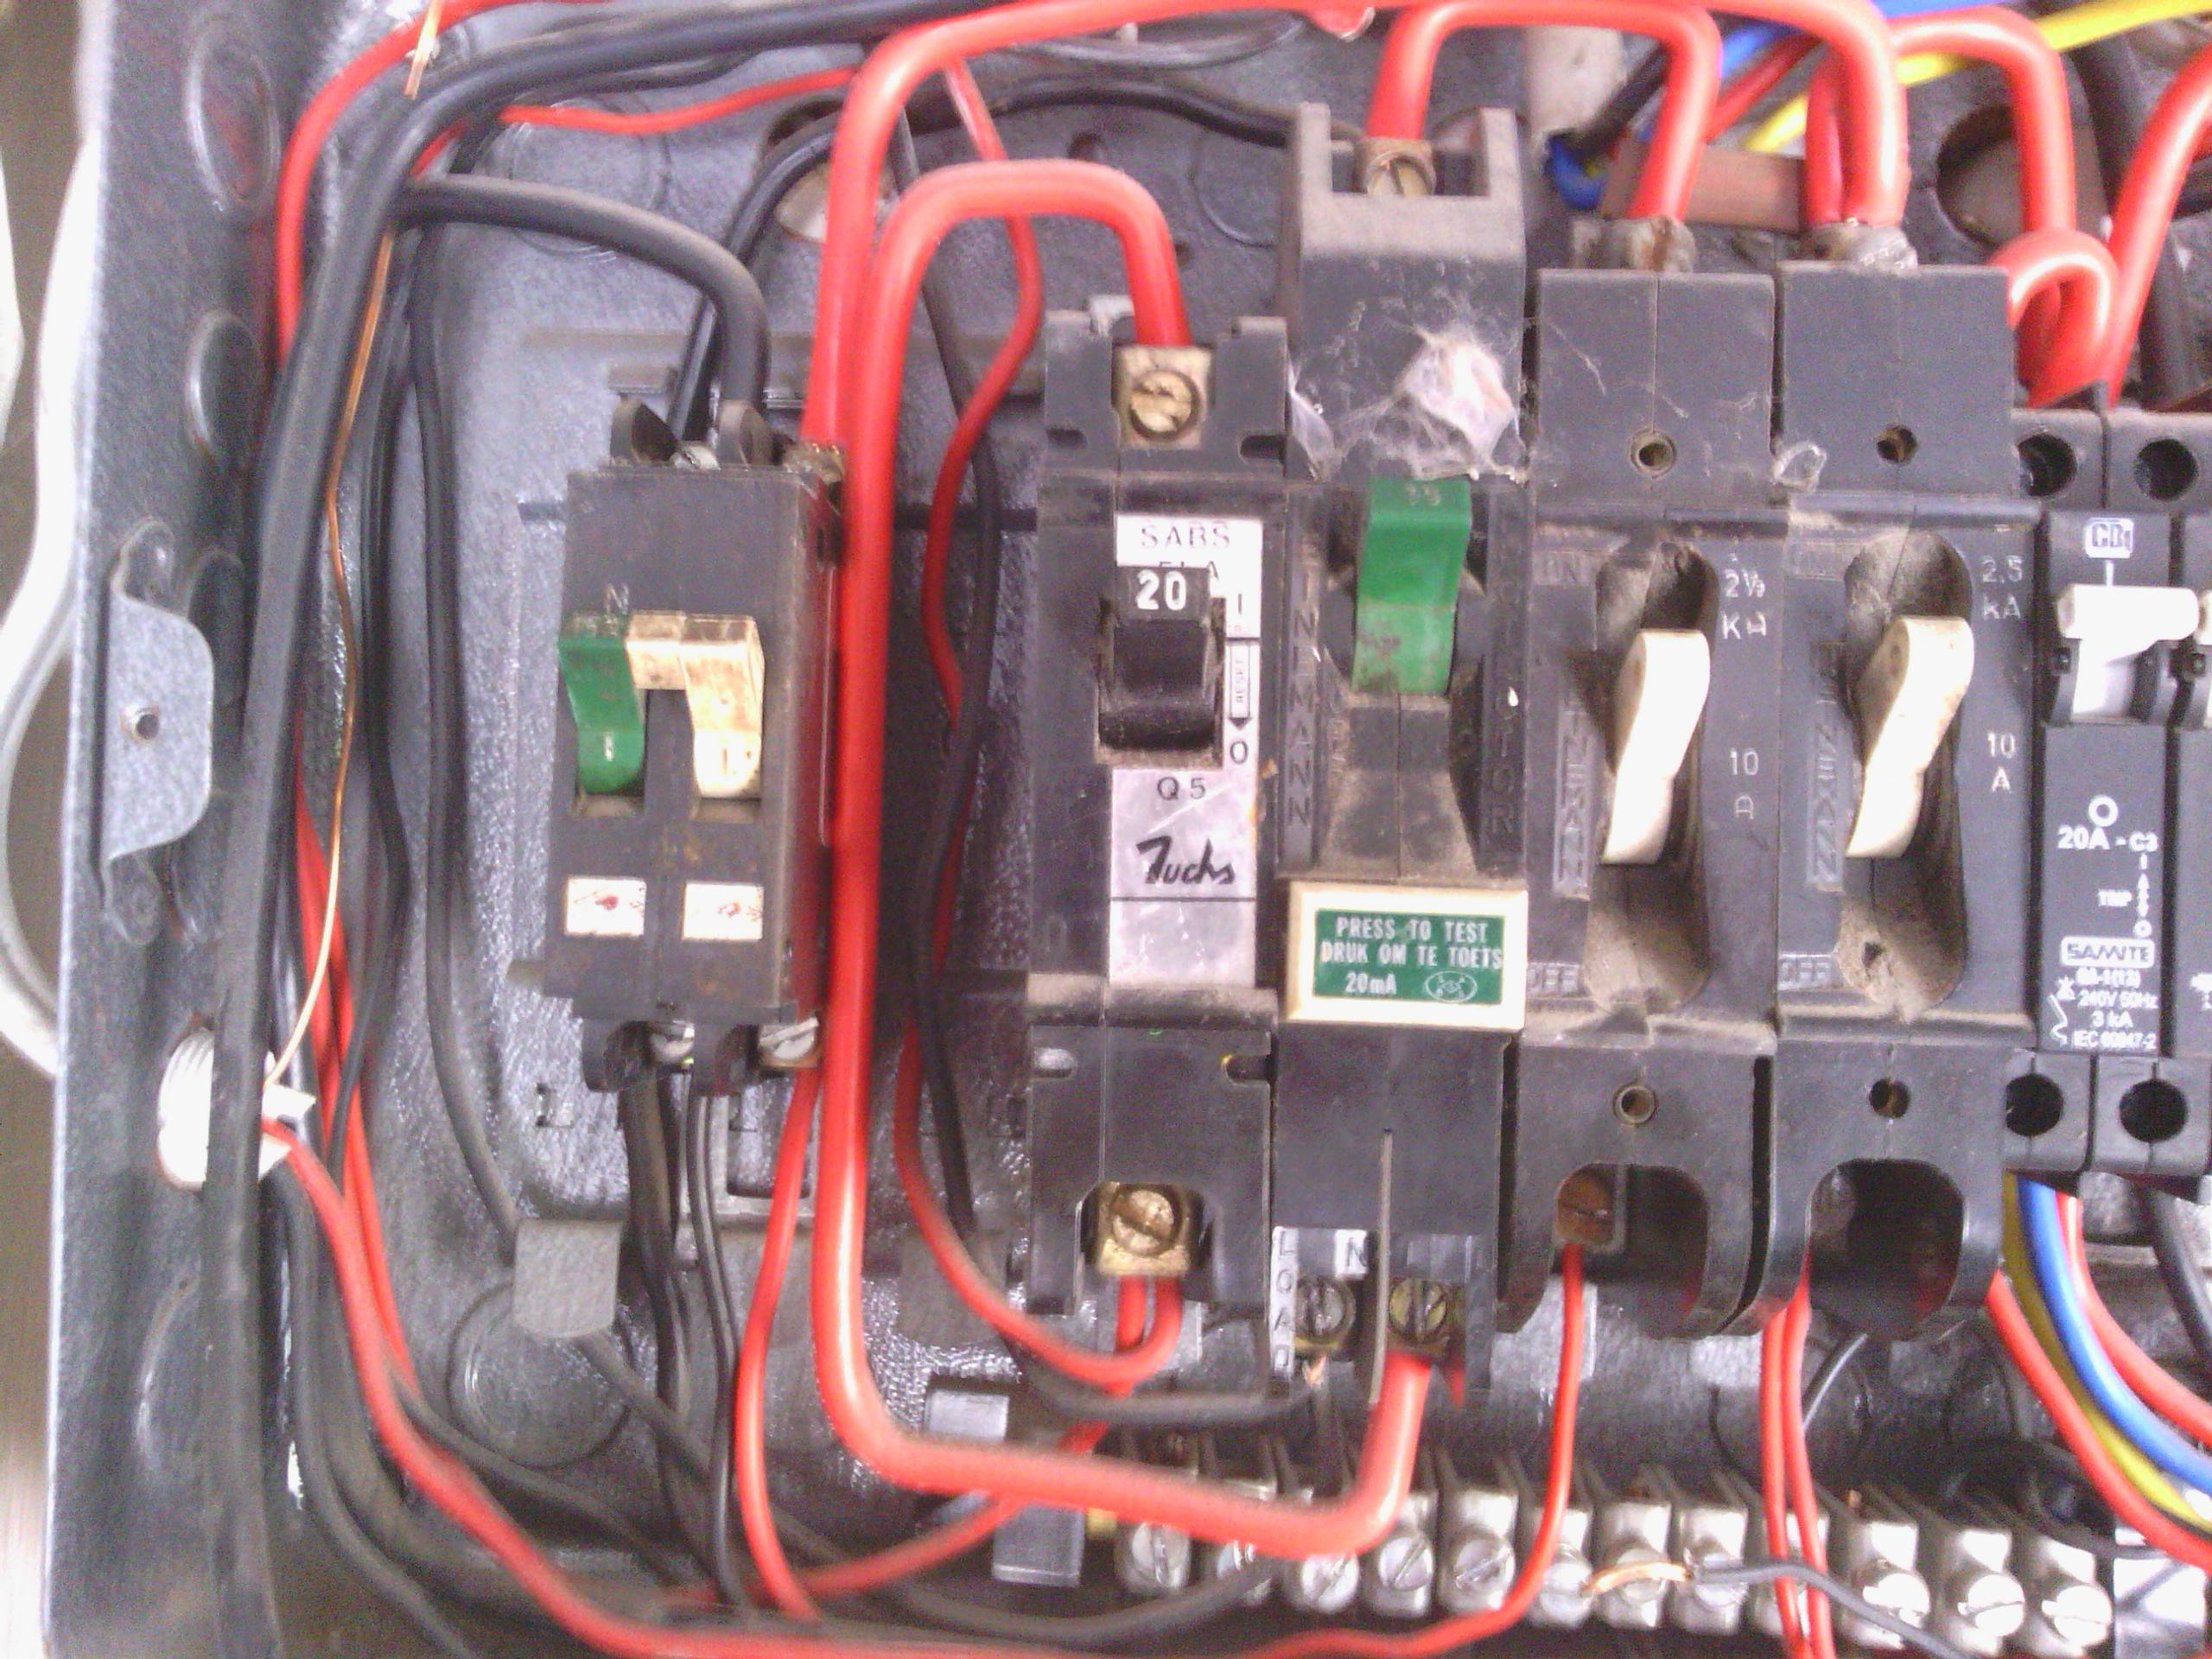 wiring diagram for house db brake light switch electrical - why two breakers (one the line, one neutral) on a single-phase line ...